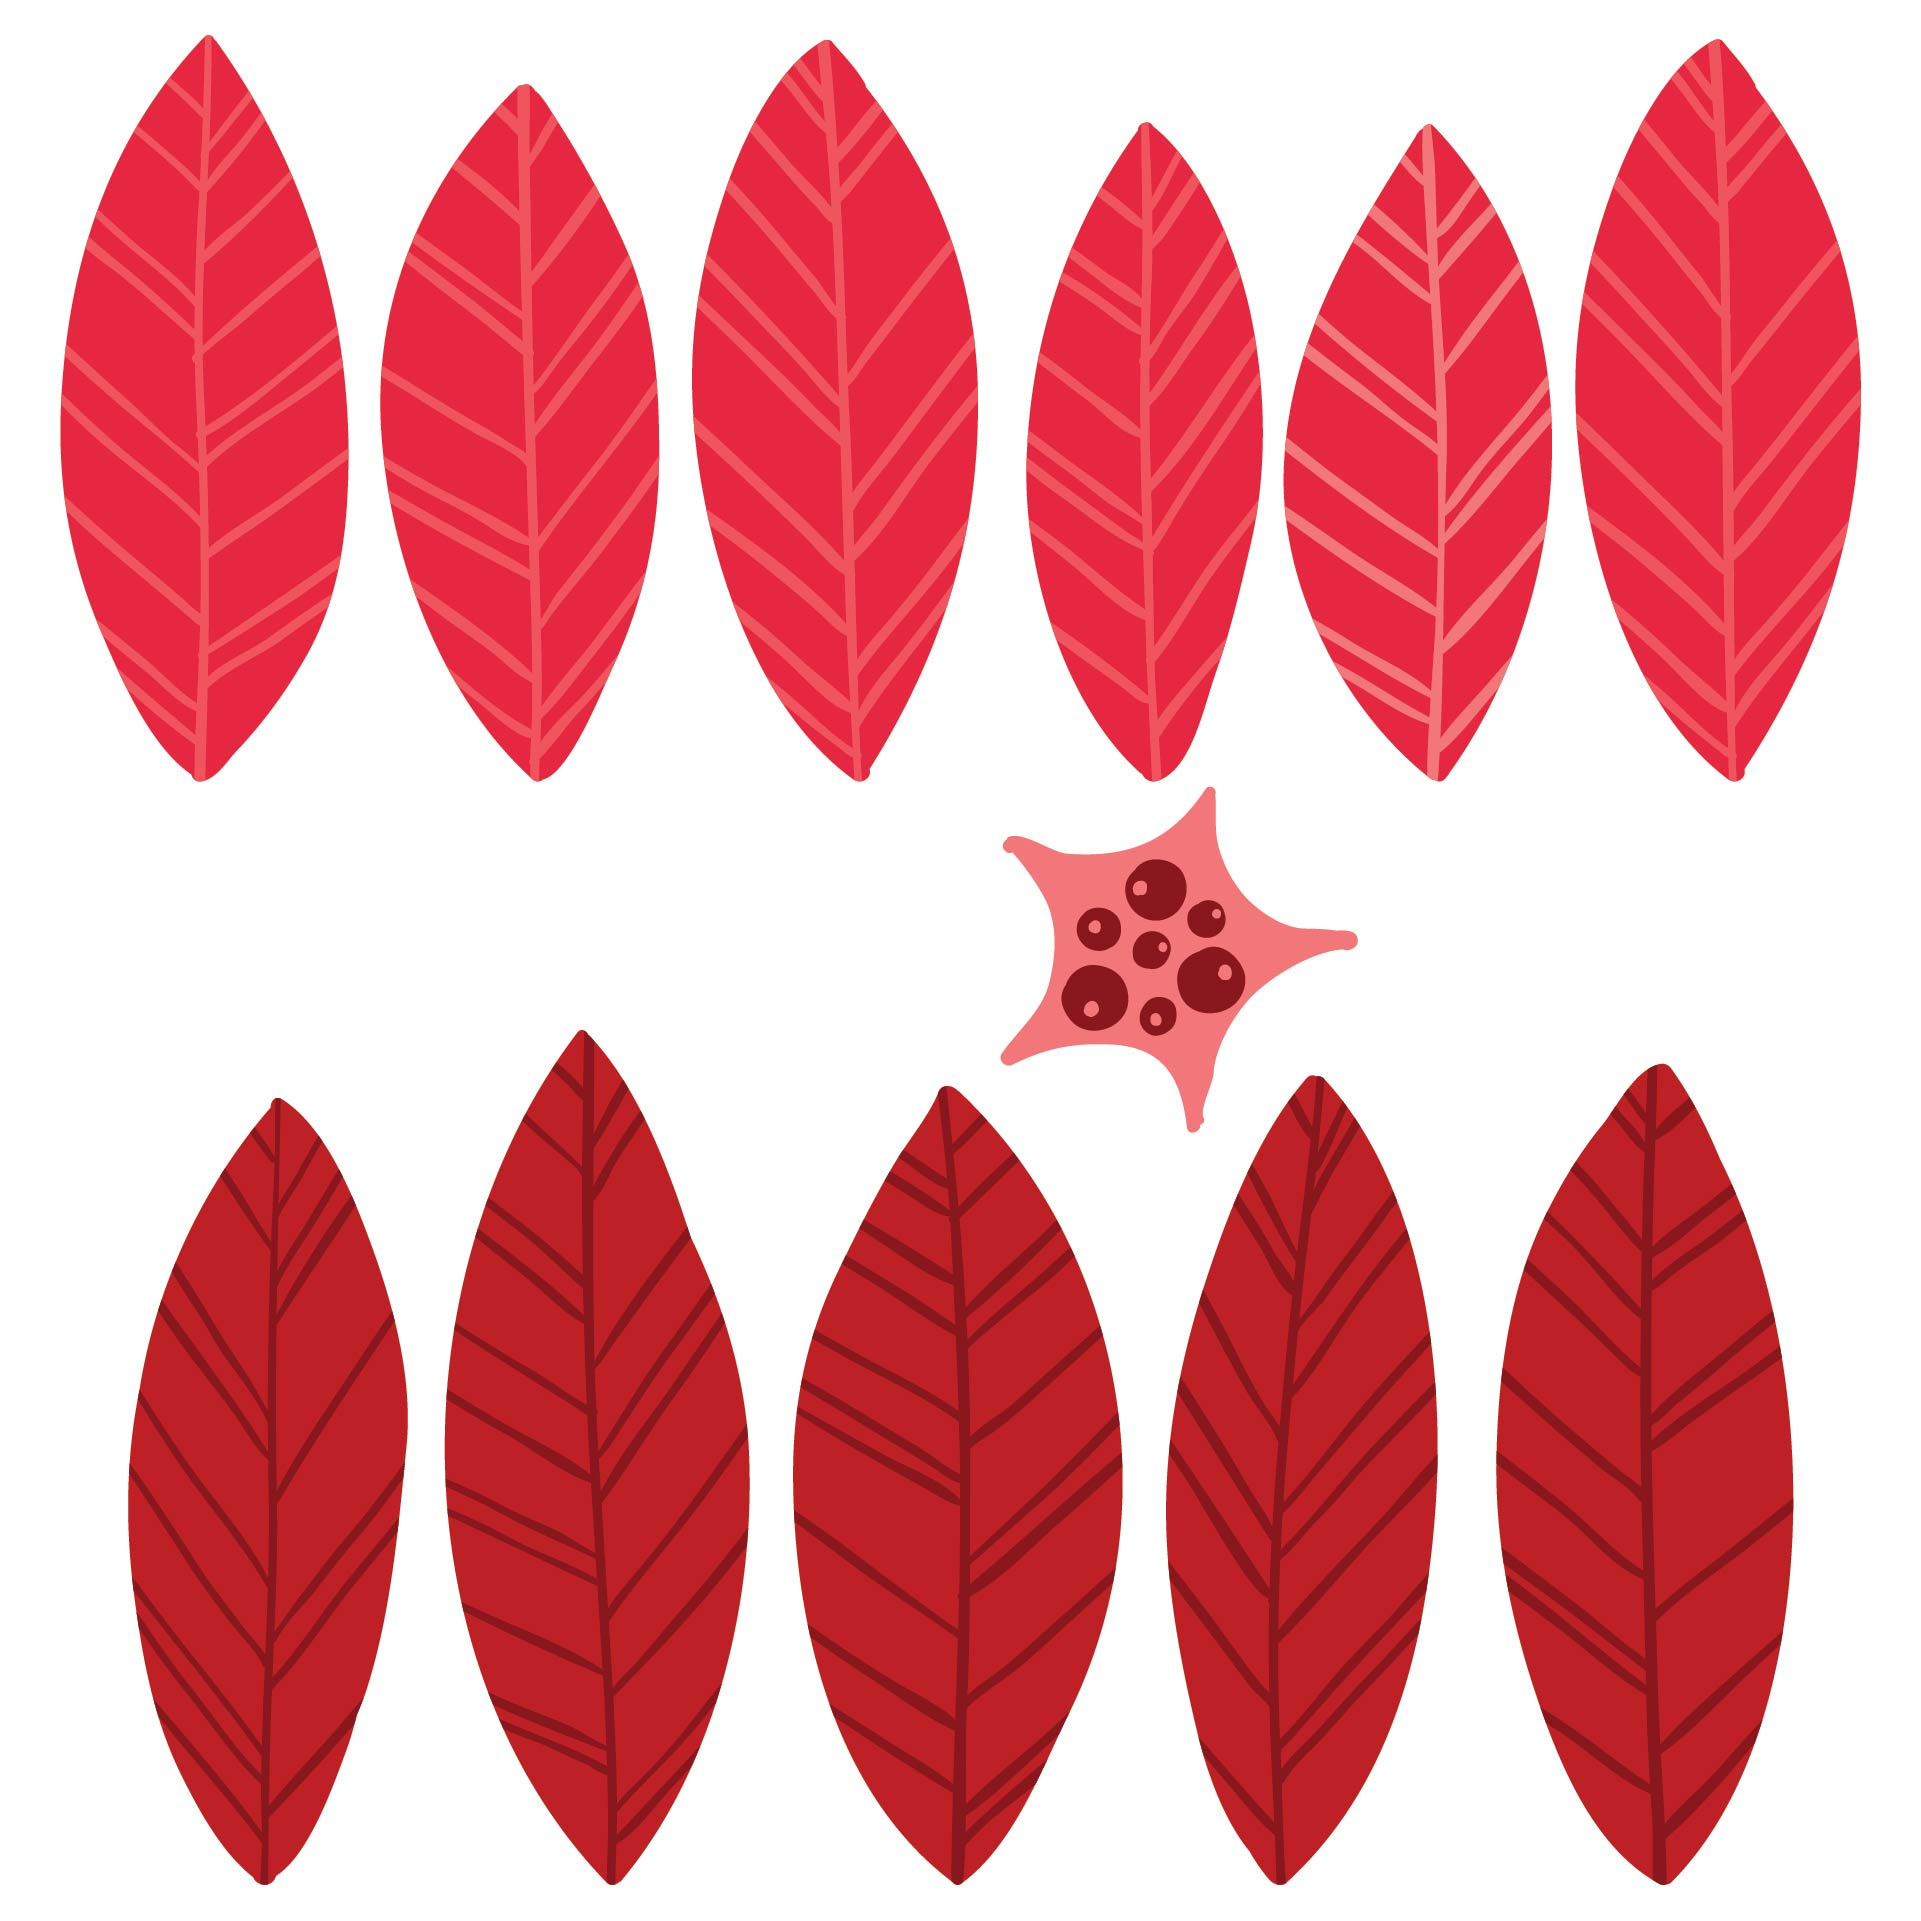 Best Images of Poinsettia Flower Template Printable - Paper Poinsettia ...